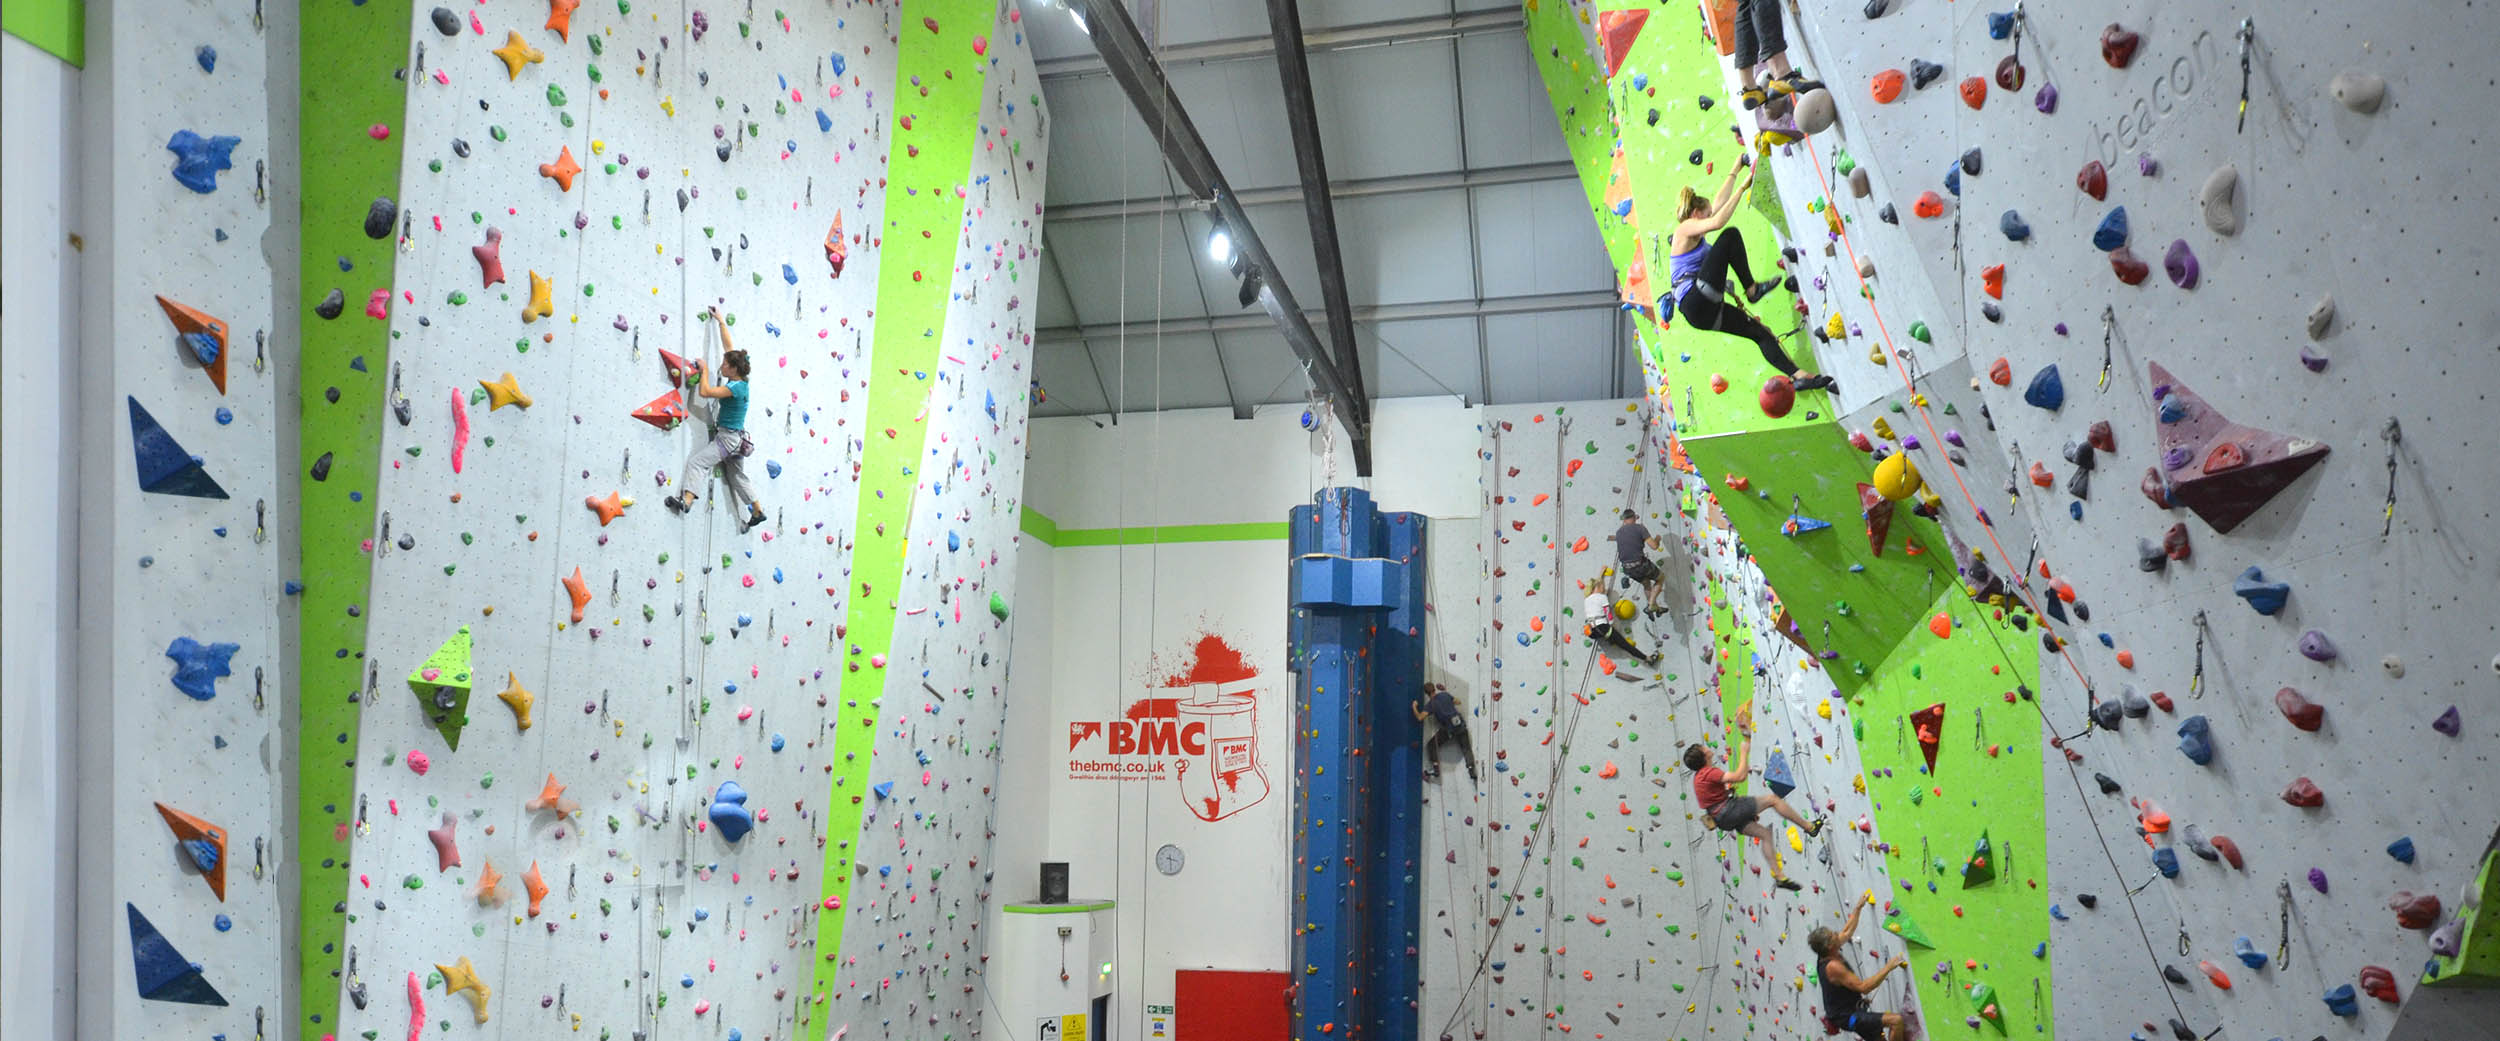 A young girl appears to be extremely focused as she makes her way across a short climbing wall